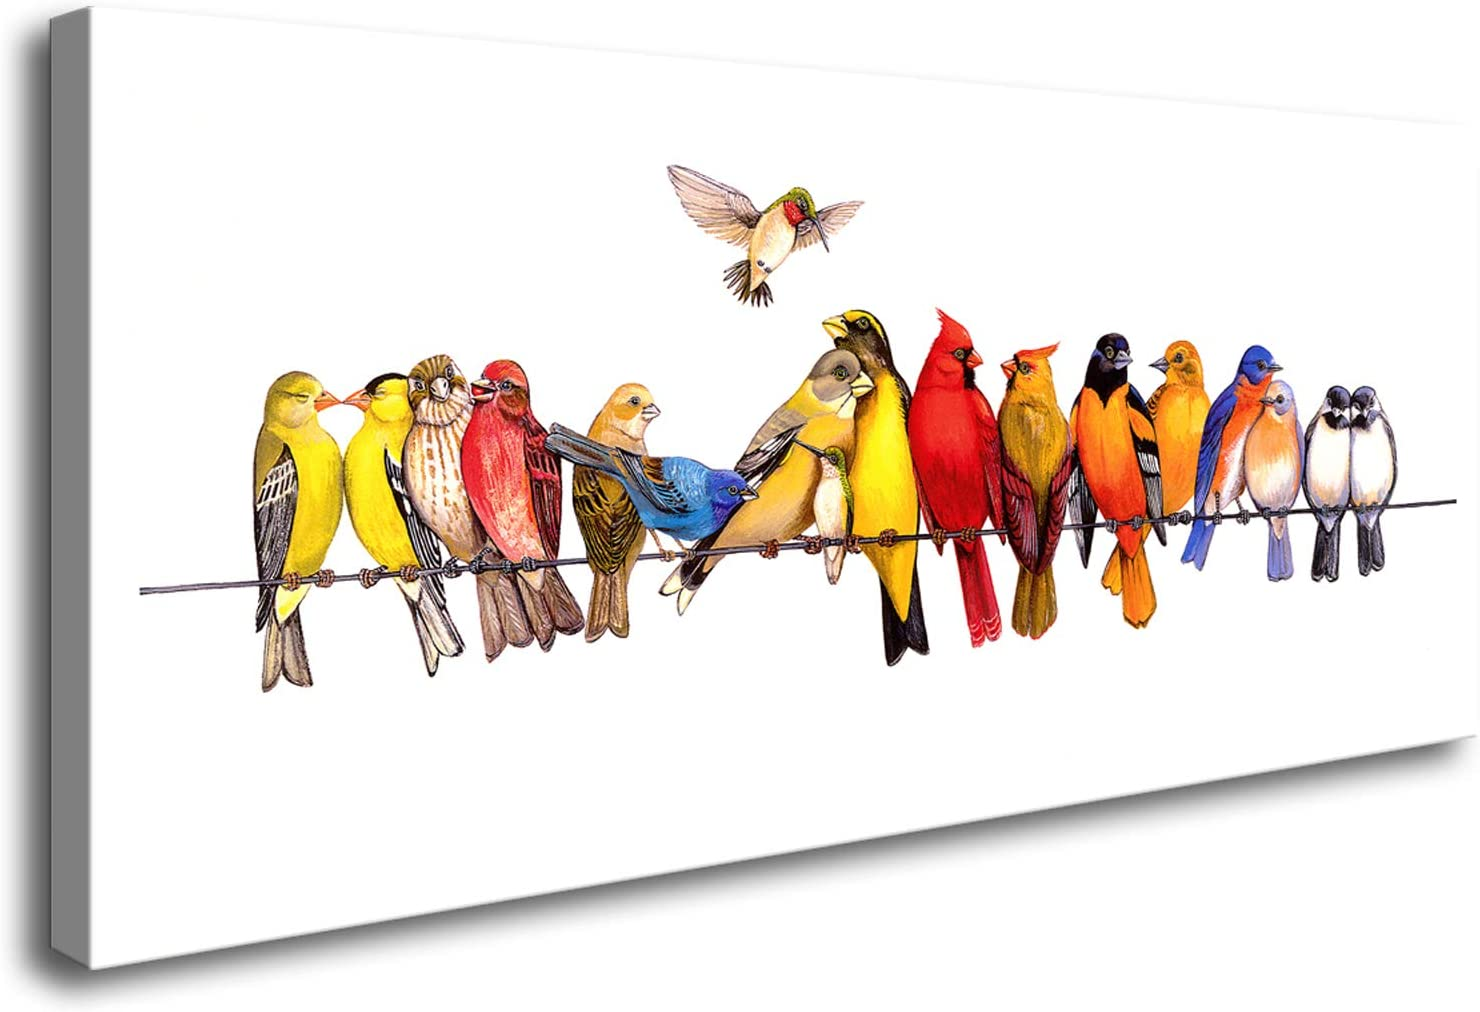 DZL Art D73150 Birds On A Wire Wall Art Birds Wall Decor Birds Print Canvas Painting Bird Lover Gift for Living Room Bedroom Office Wall Decor Home Decoration